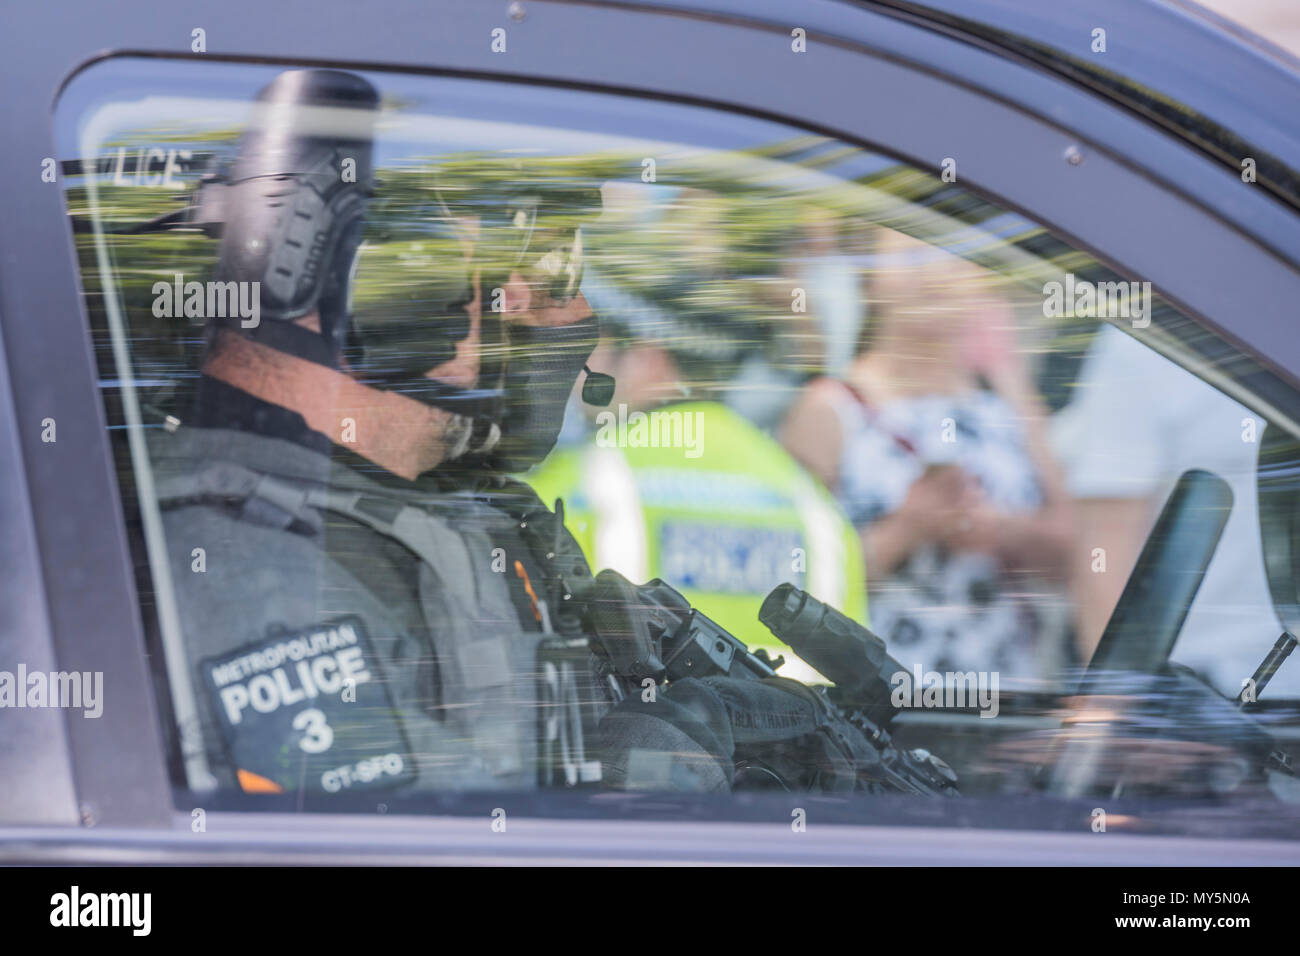 London, UK. 6th Jun, 2018. Security is heavily armed - Protestors supporting Palestine and counter protestors supporting Israel gather in Whitehall. As Benjamin Netanyahu, Prime Minister of Israel meets Theresa May in Downing Street. Credit: Guy Bell/Alamy Live News - Stock Image